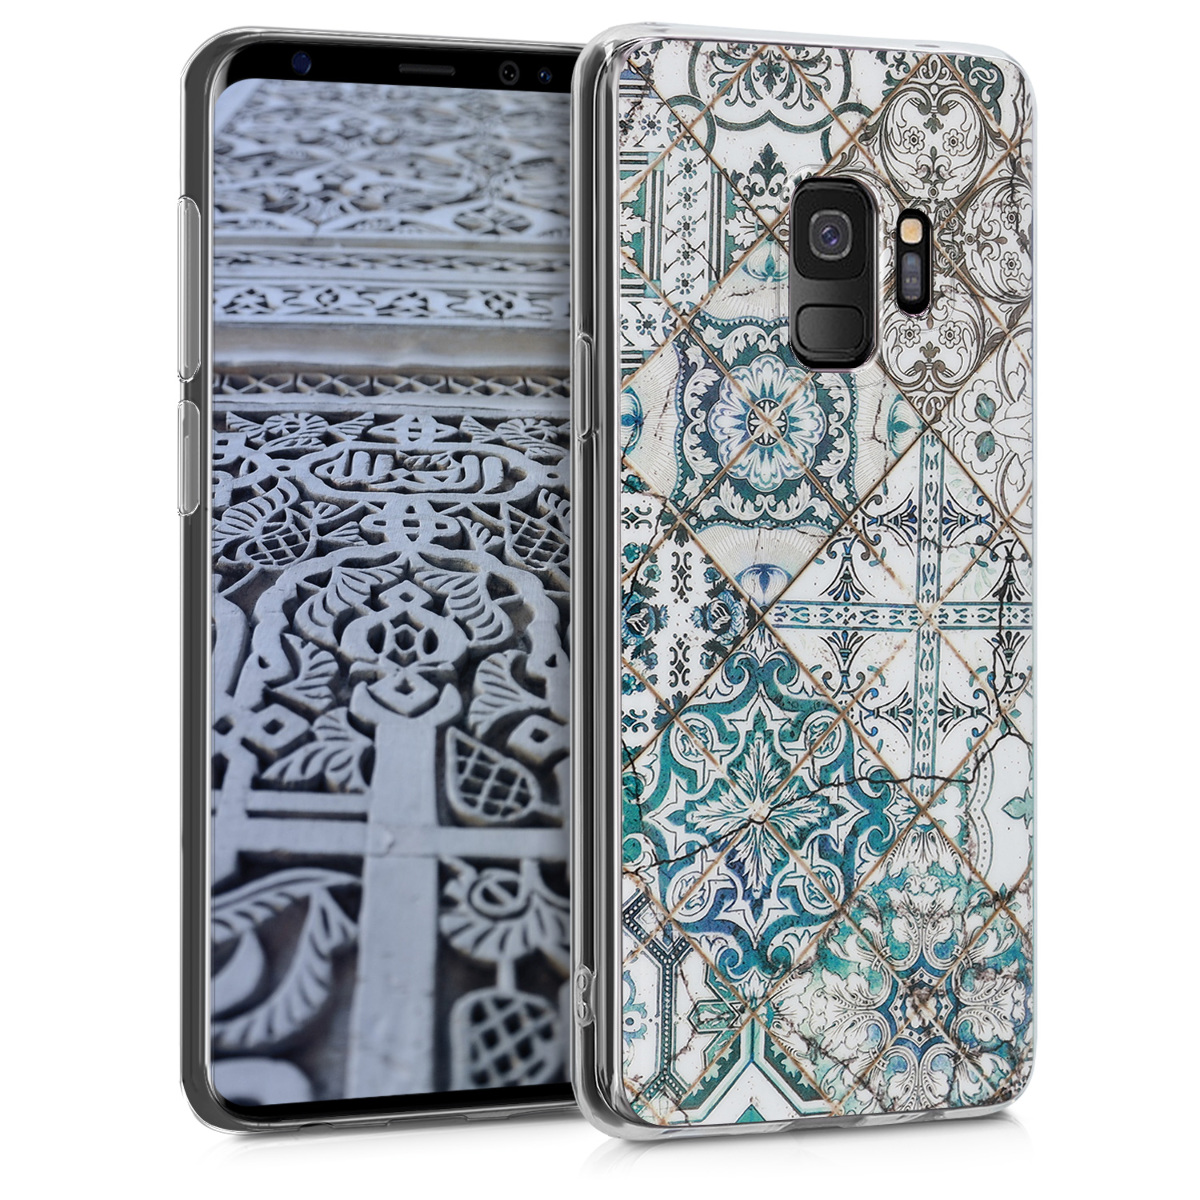 Pouzdro pro Samsung Galaxy S9 - TPU Crystal Clear Back Protective Cover IMD Design - Moroccan Vibes in Monochrome Blue / Grey / White